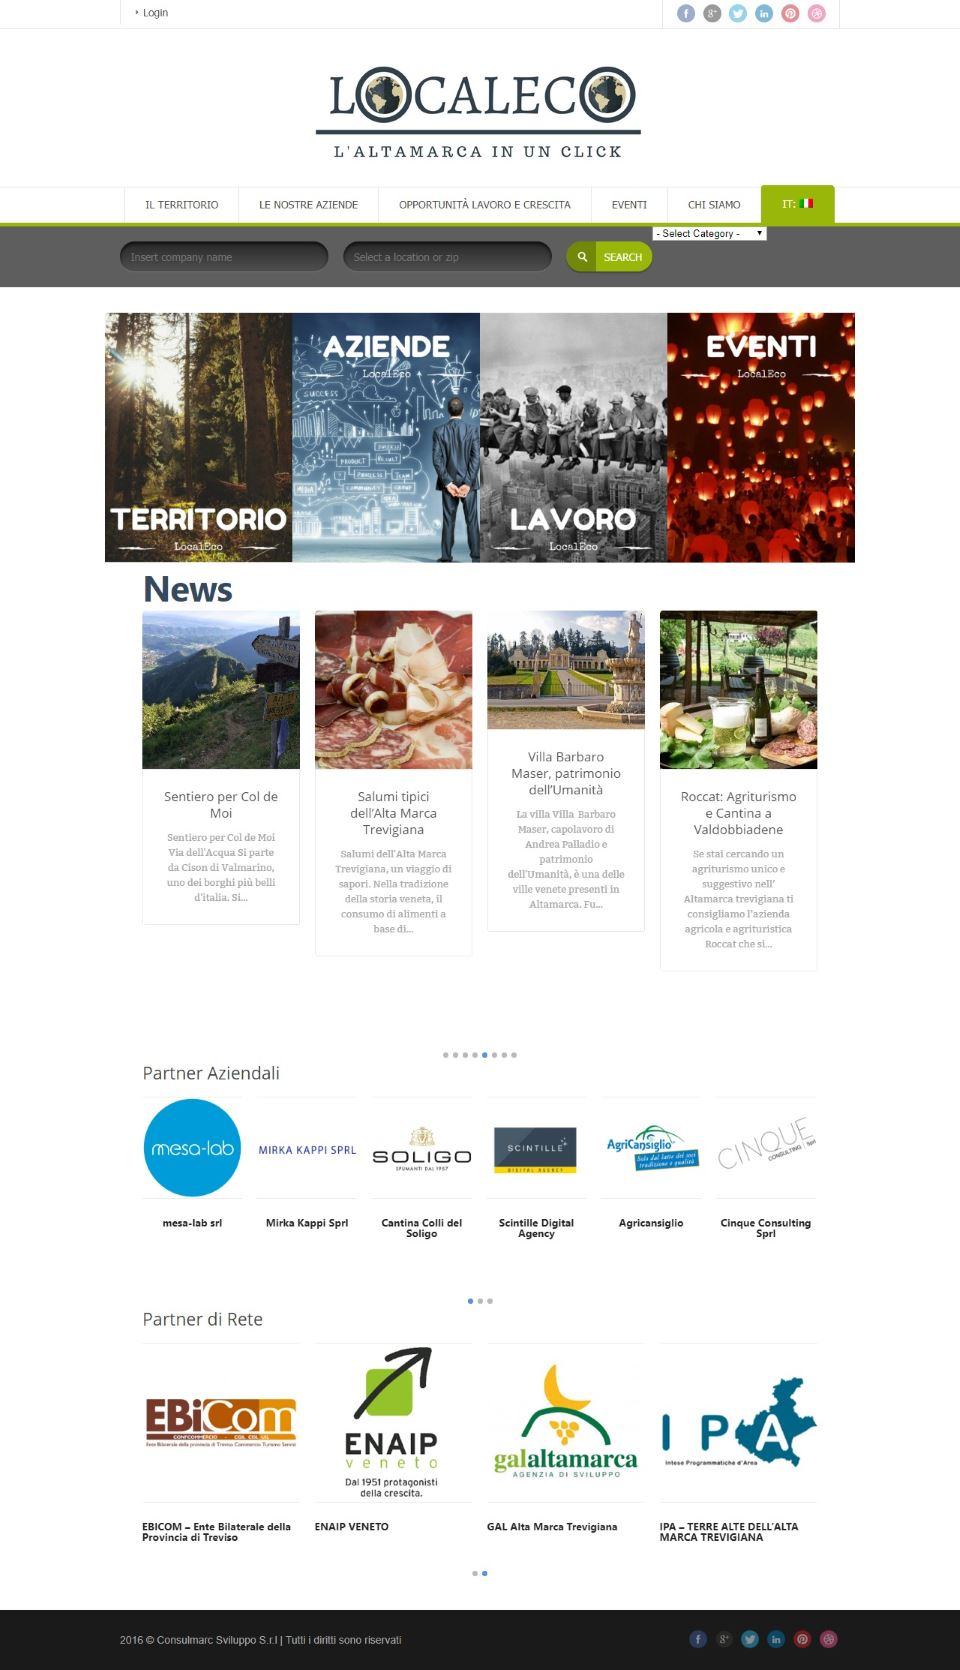 Localeco.it homepage